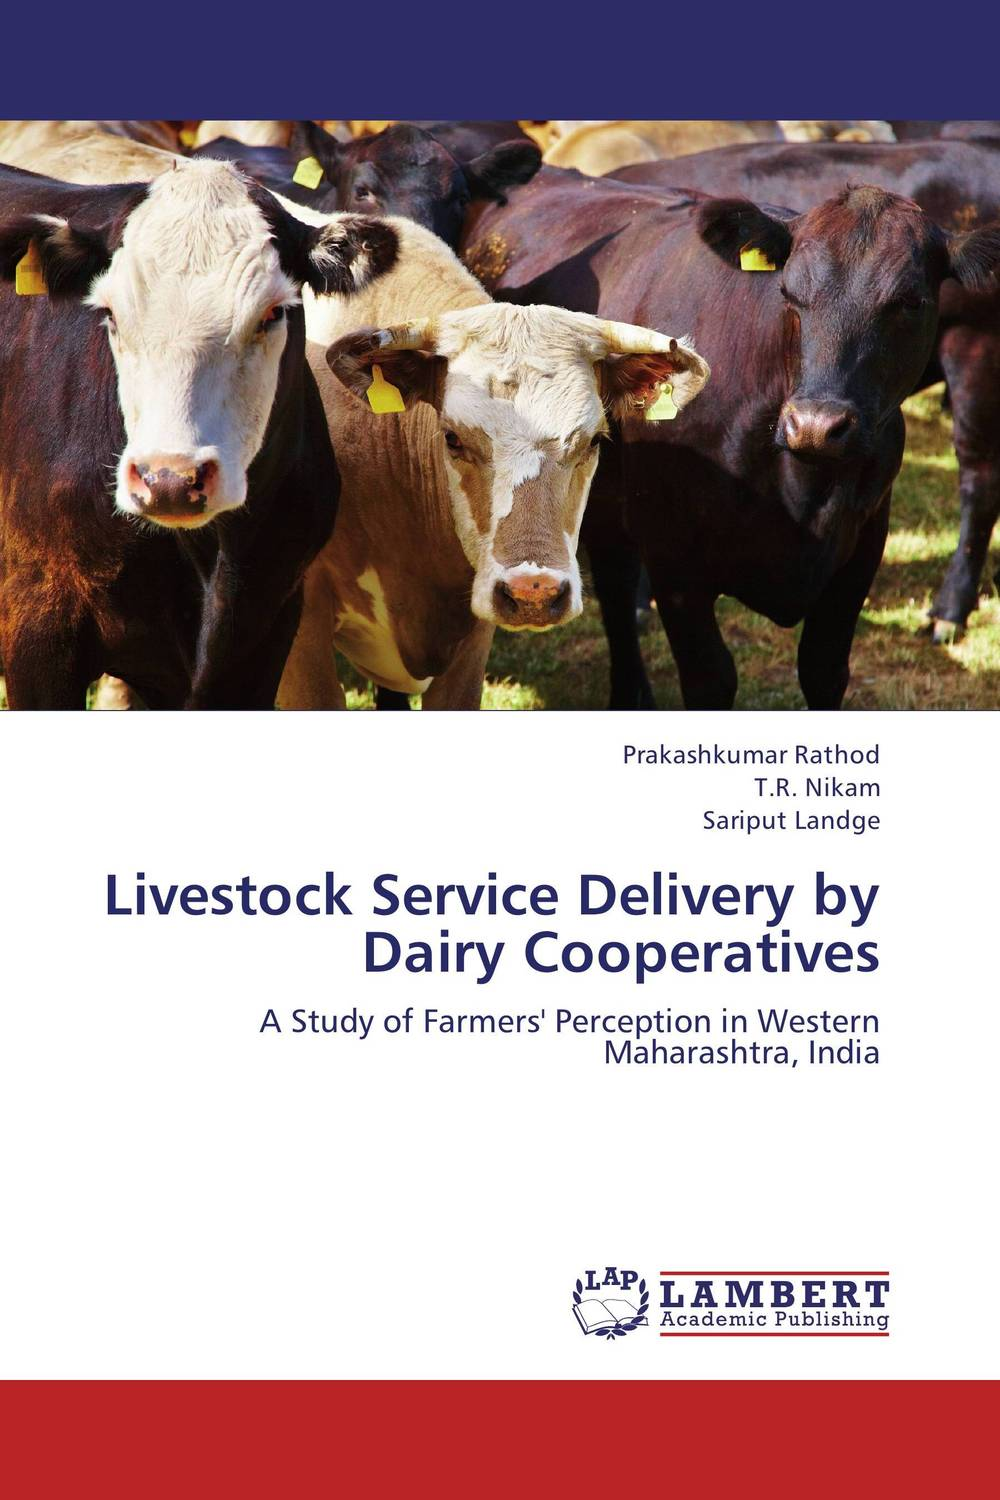 Livestock Service Delivery by Dairy Cooperatives усилитель слухa в иркутске